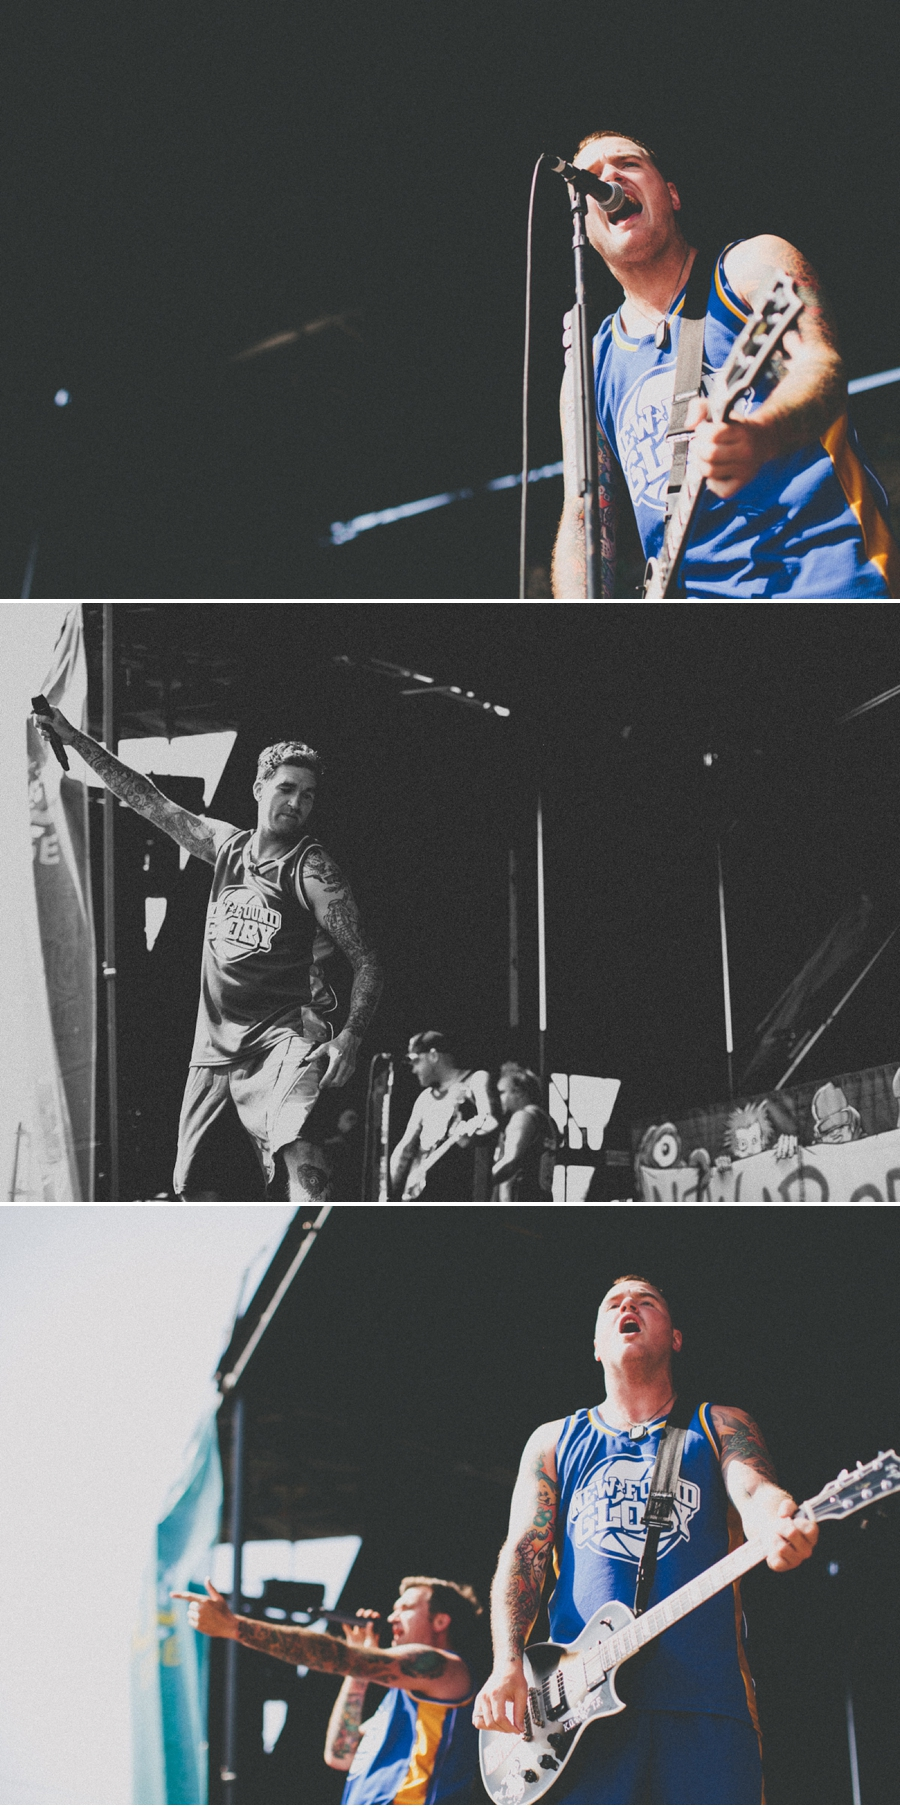 Florida pop-punk band New Found Glory performs on Vans Warped Tour 2012 in Dallas, Texas.